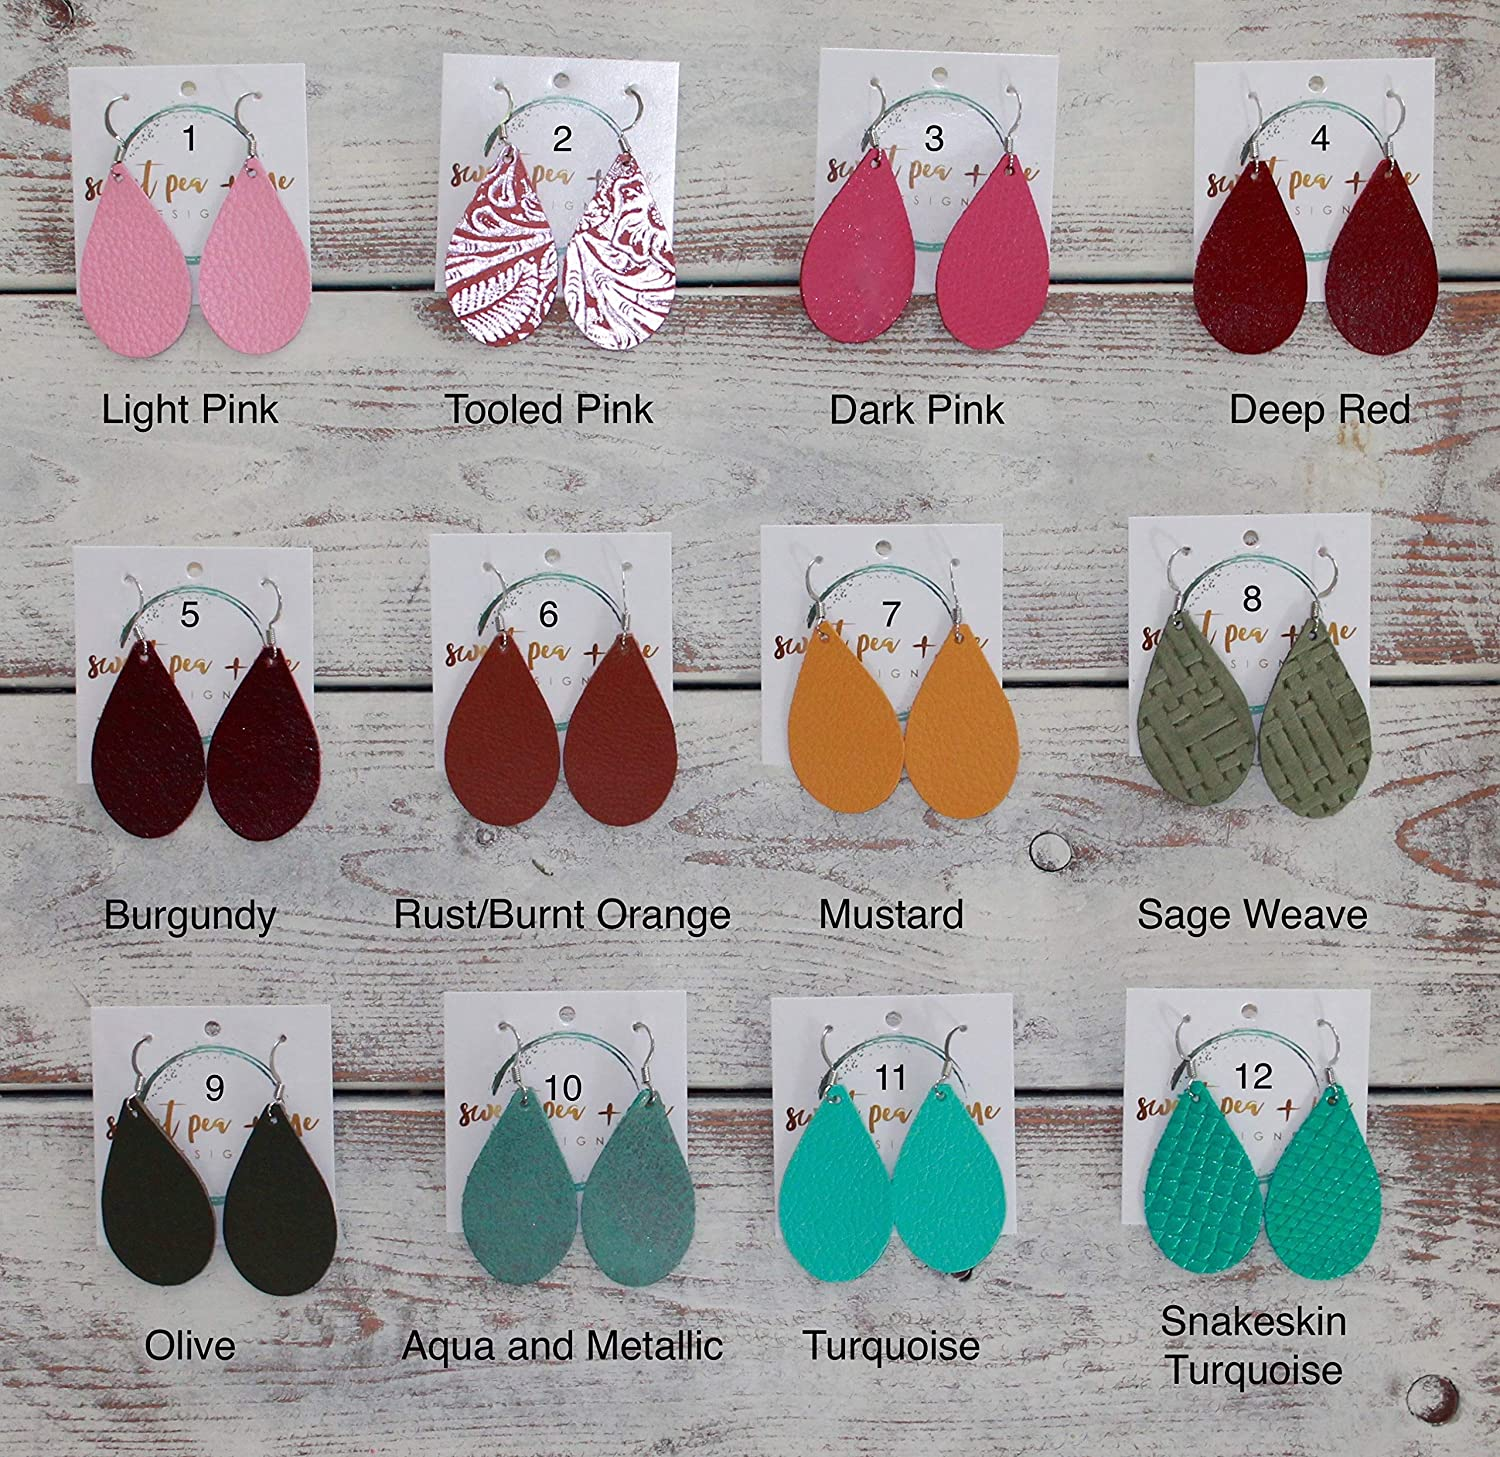 Extra Small Lightweight Handmade Leather Teardrop Earrings - 53 Stylish Colors